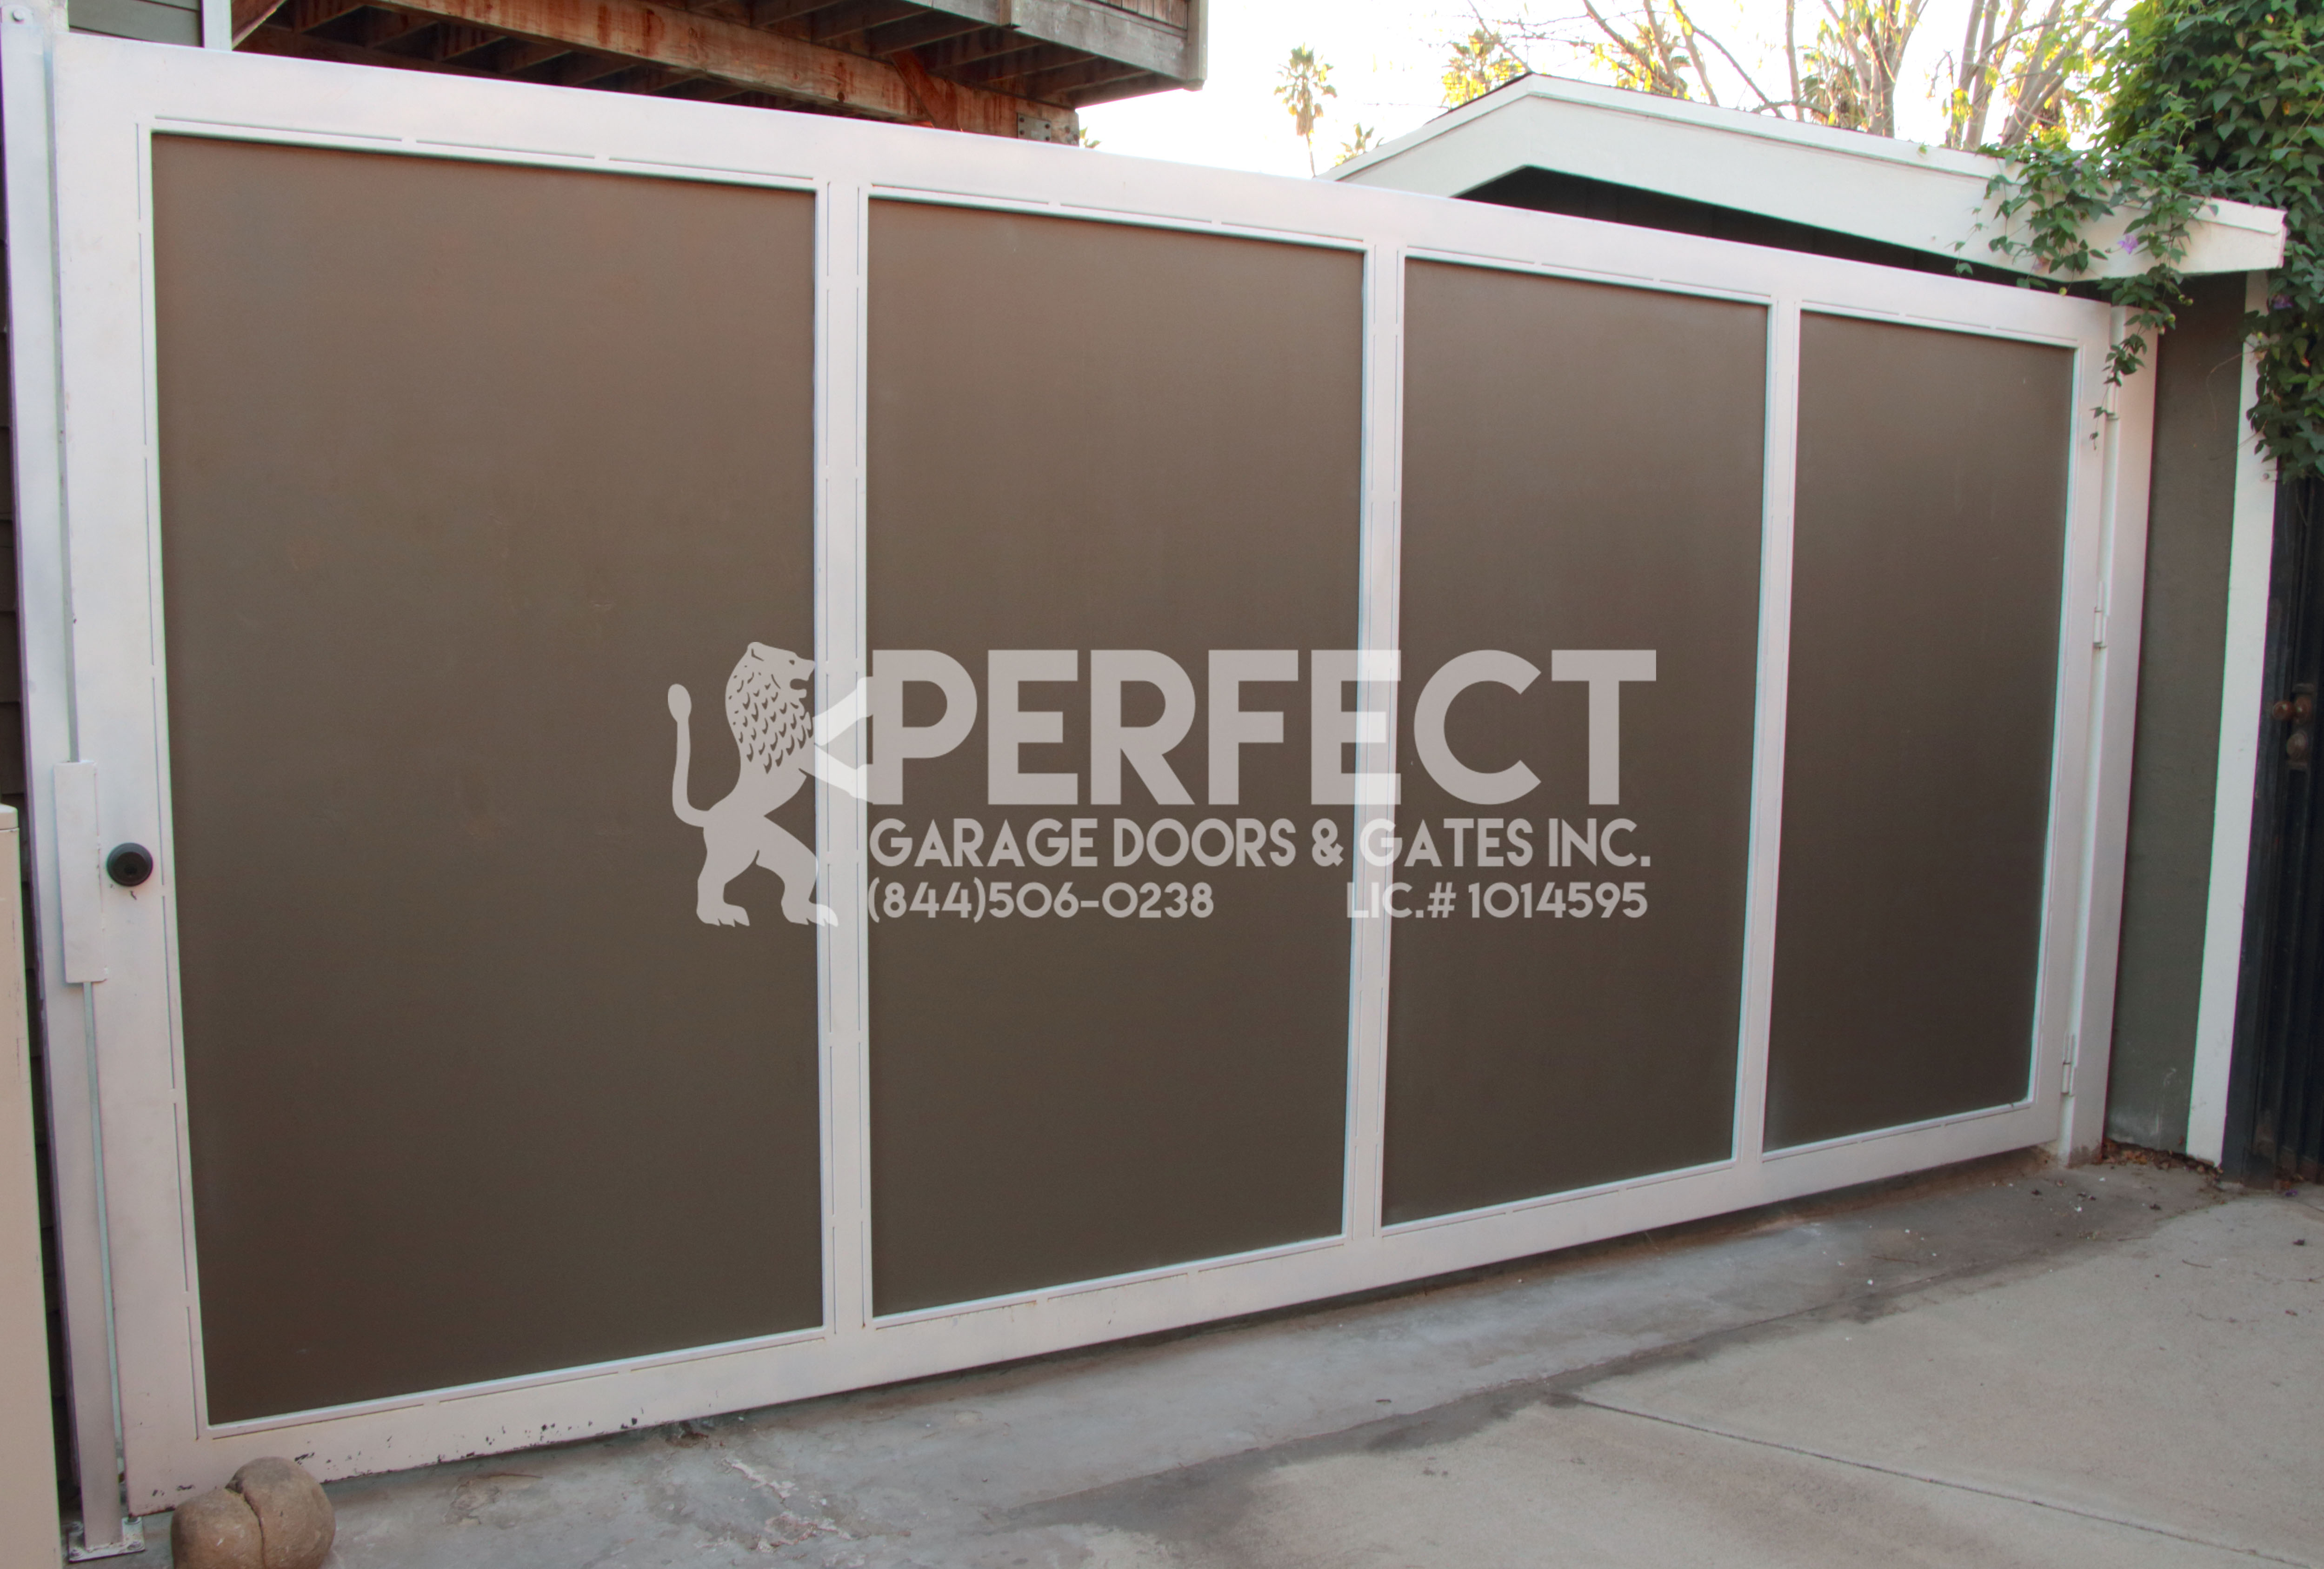 Perfect Garage Door And Gates 13222 Raymer St Ste A North Hollywood